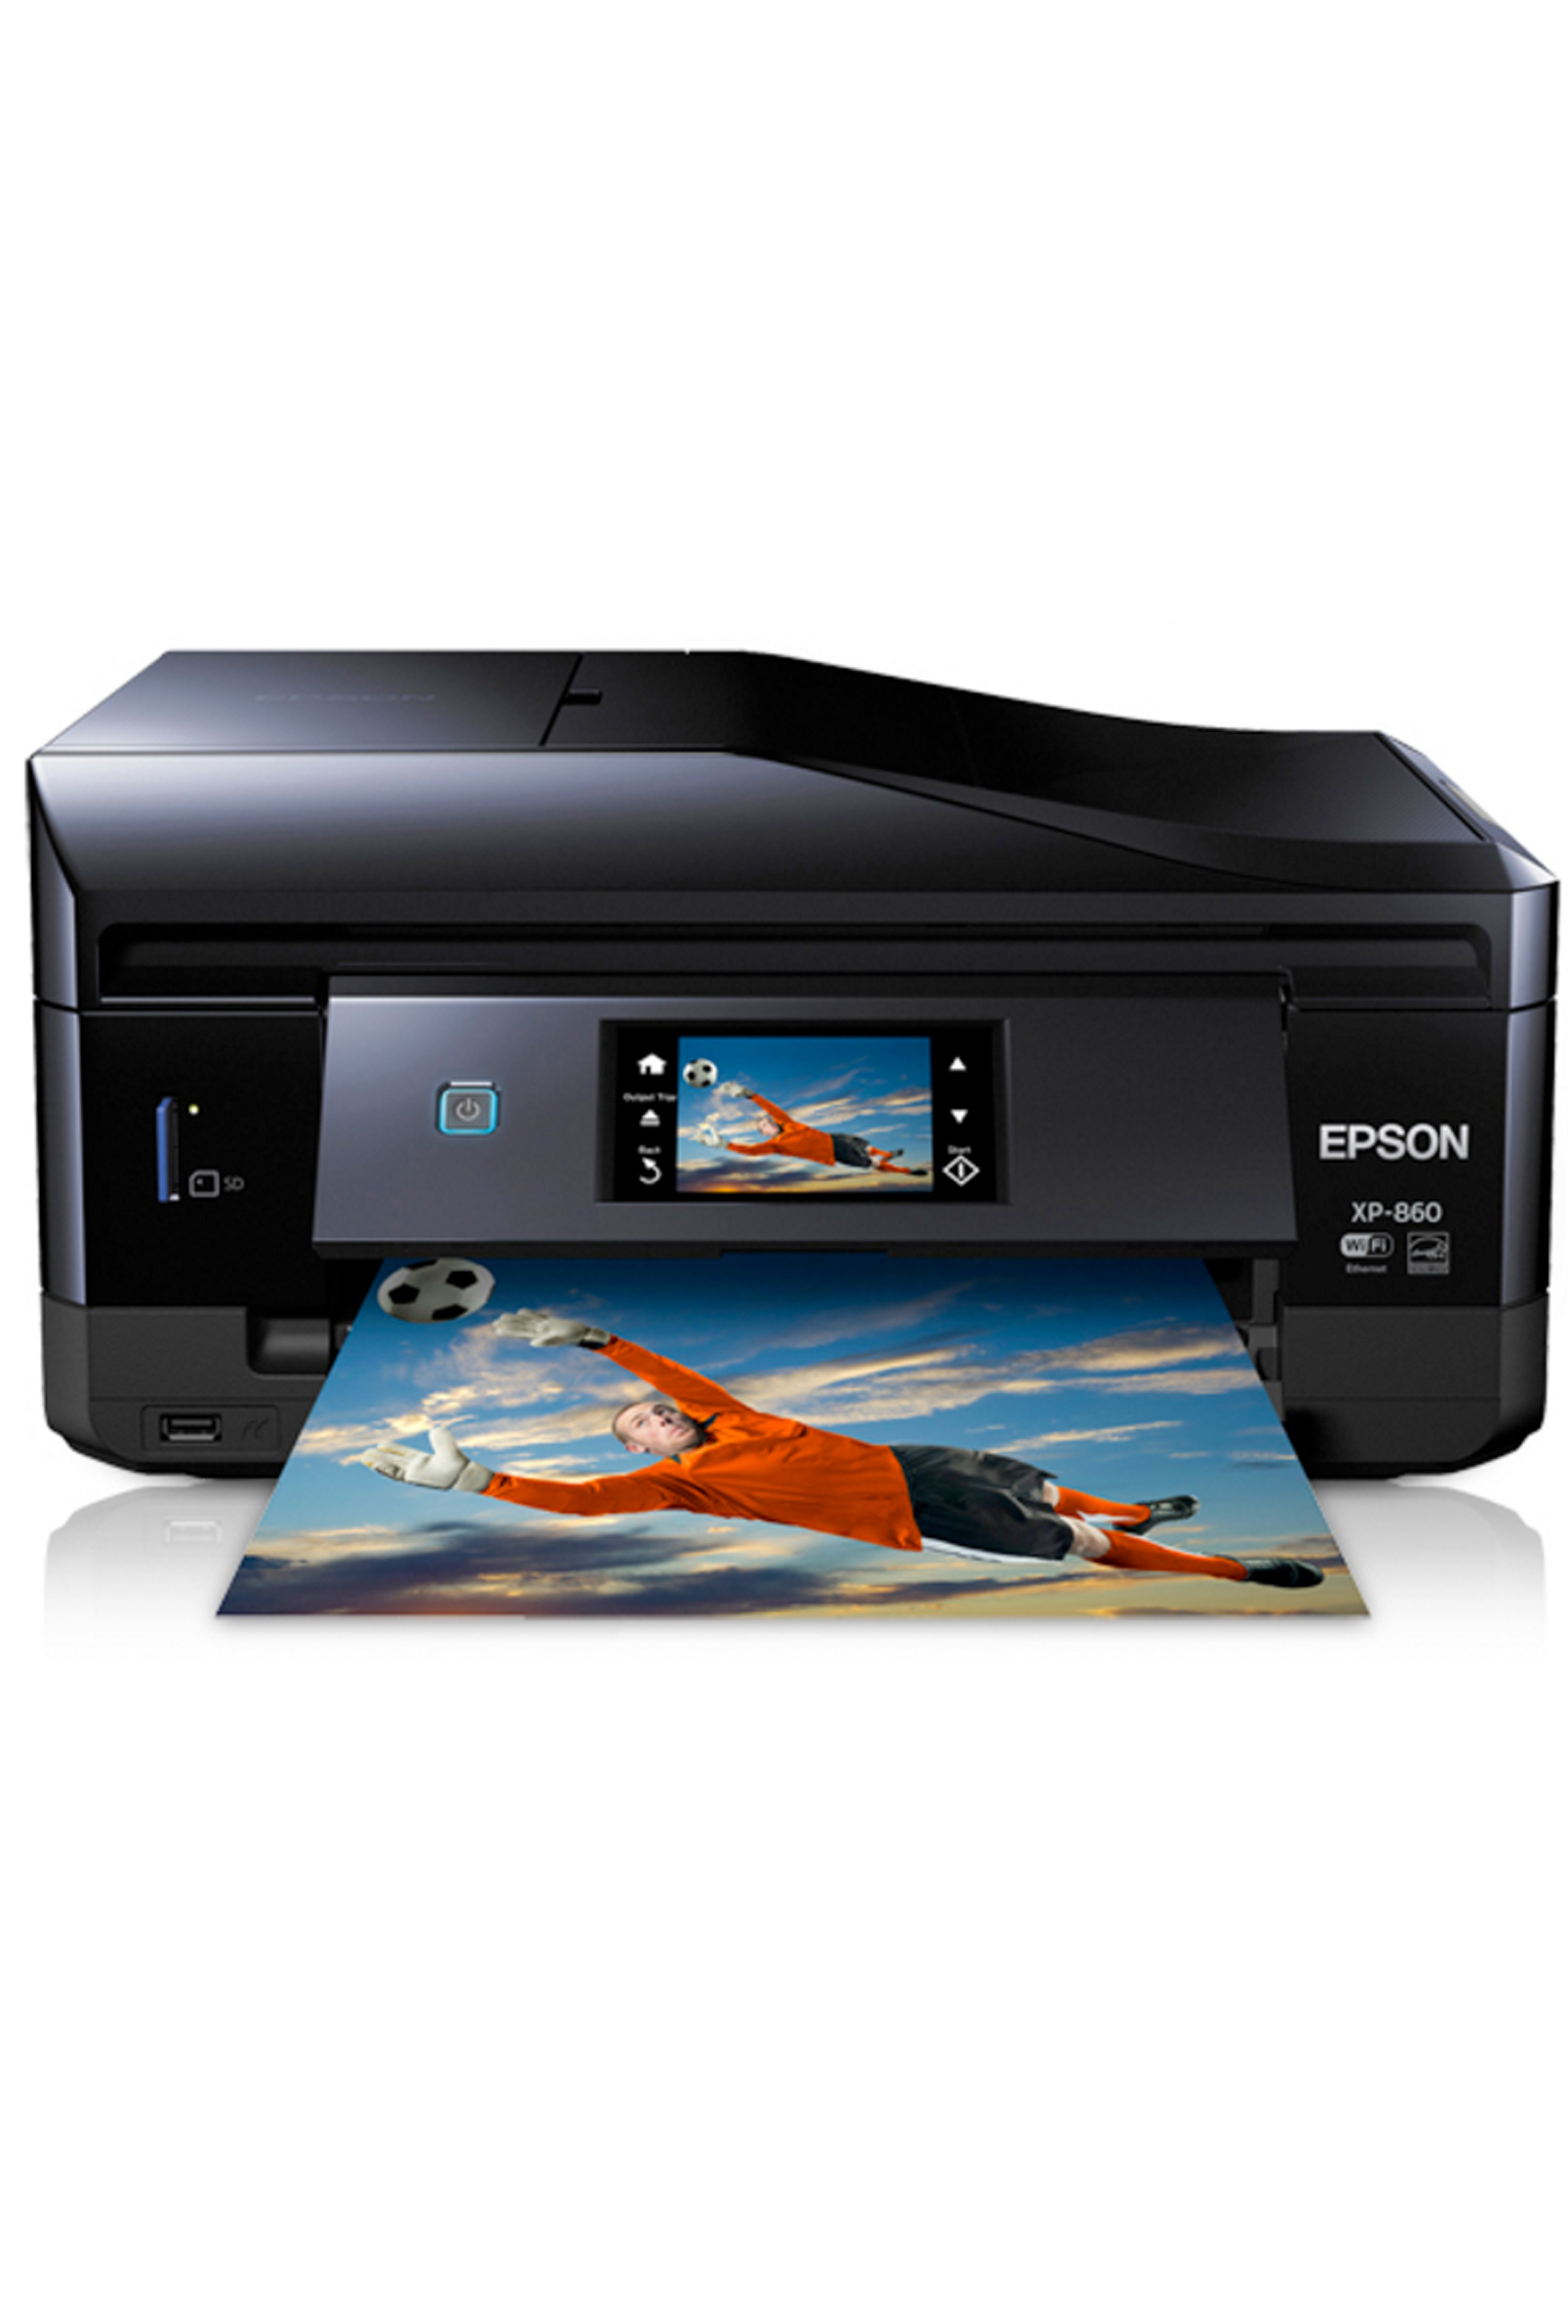 Epson Expression Photo XP-860 Small-in-One All-in-One Printer...